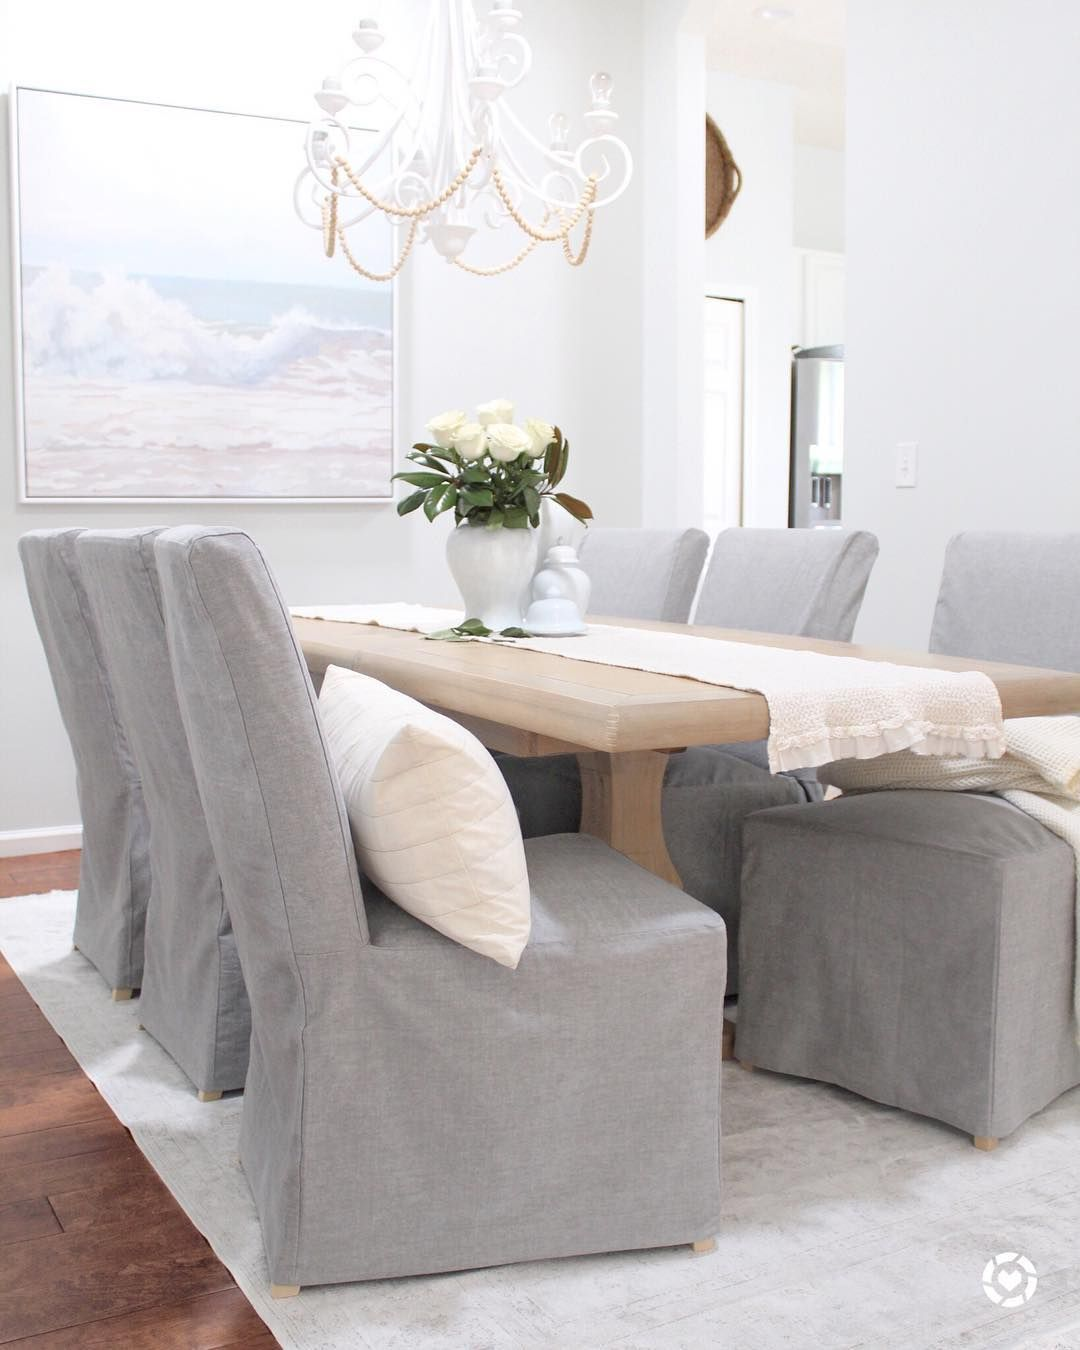 Ikea Henriksdal In Madison Ash Dining Chair Slipcovers